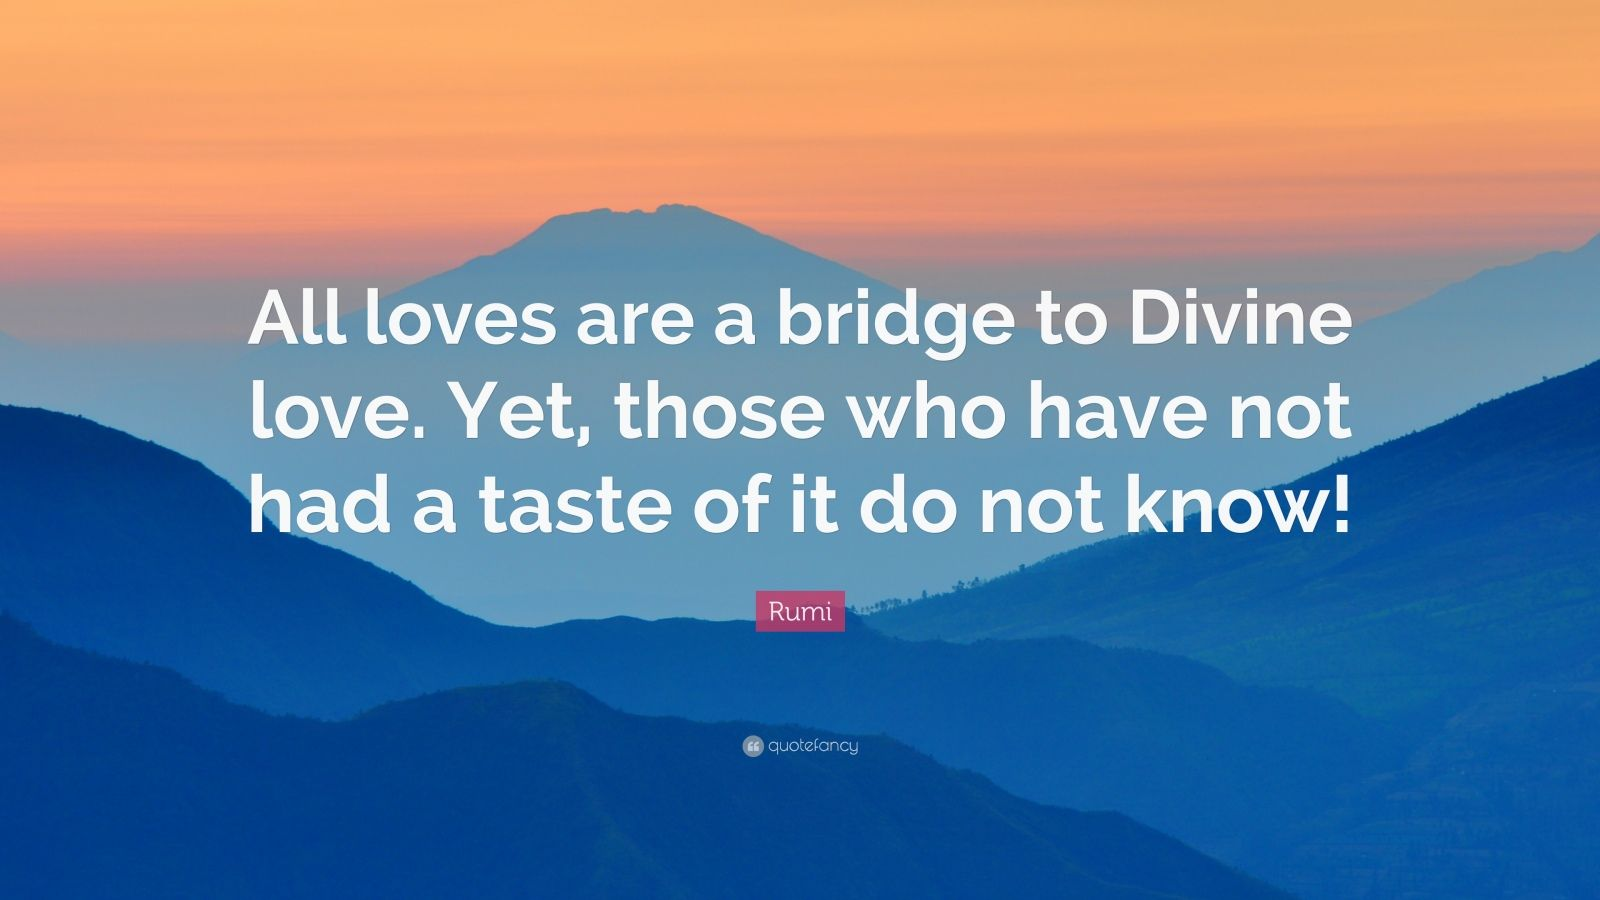 """Rumi Quote: """"All loves are a bridge to Divine love. Yet, those who have not had a taste of it do not know!"""""""